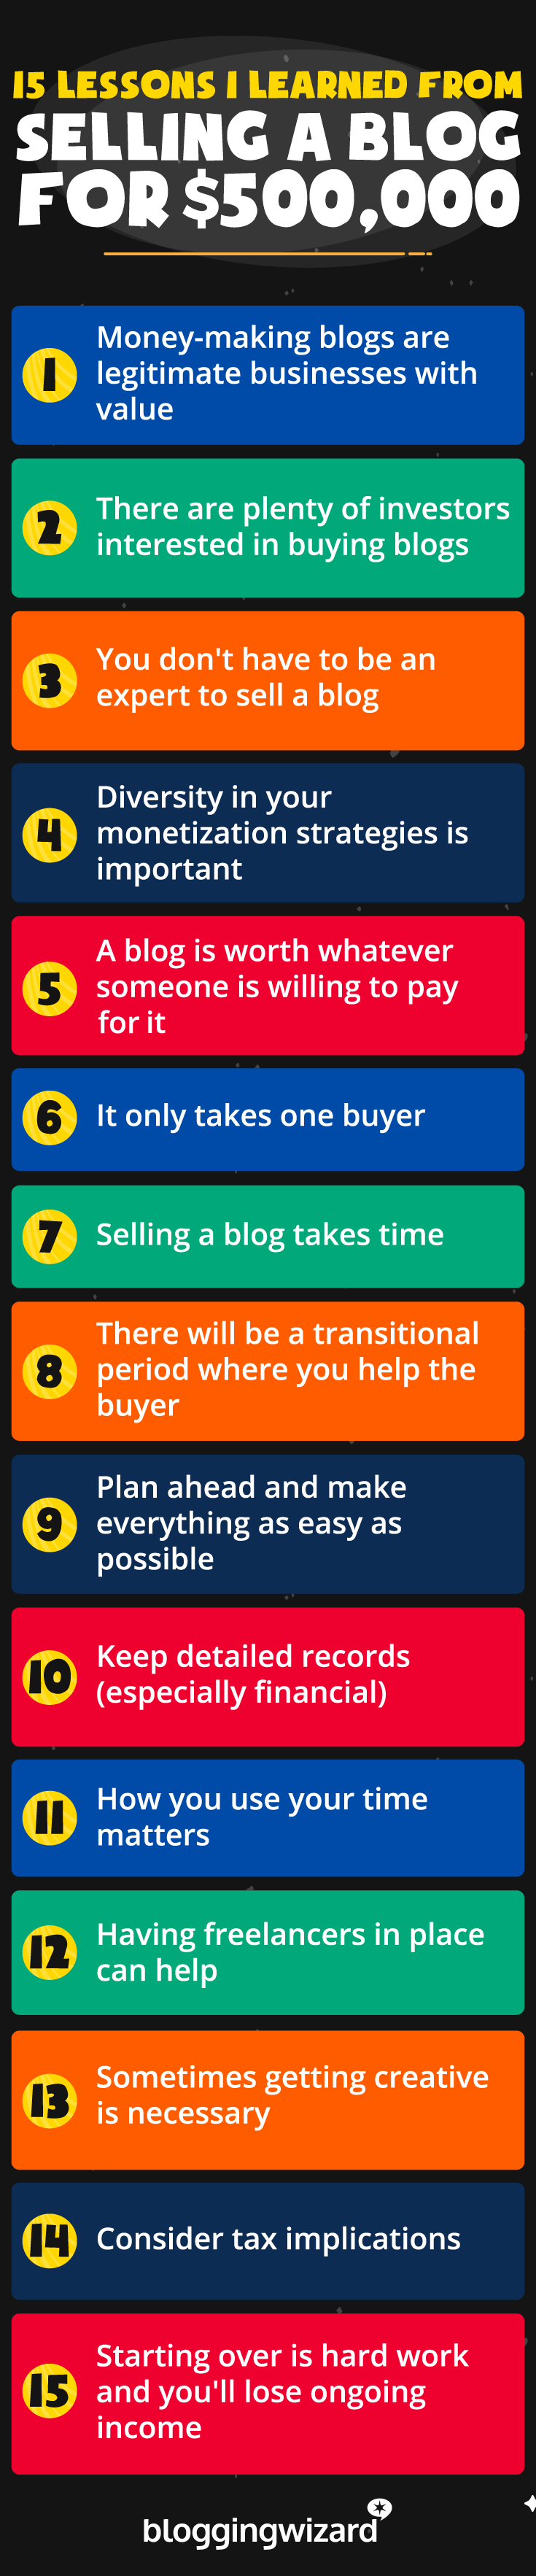 Lessons I Learned From Selling A Blog